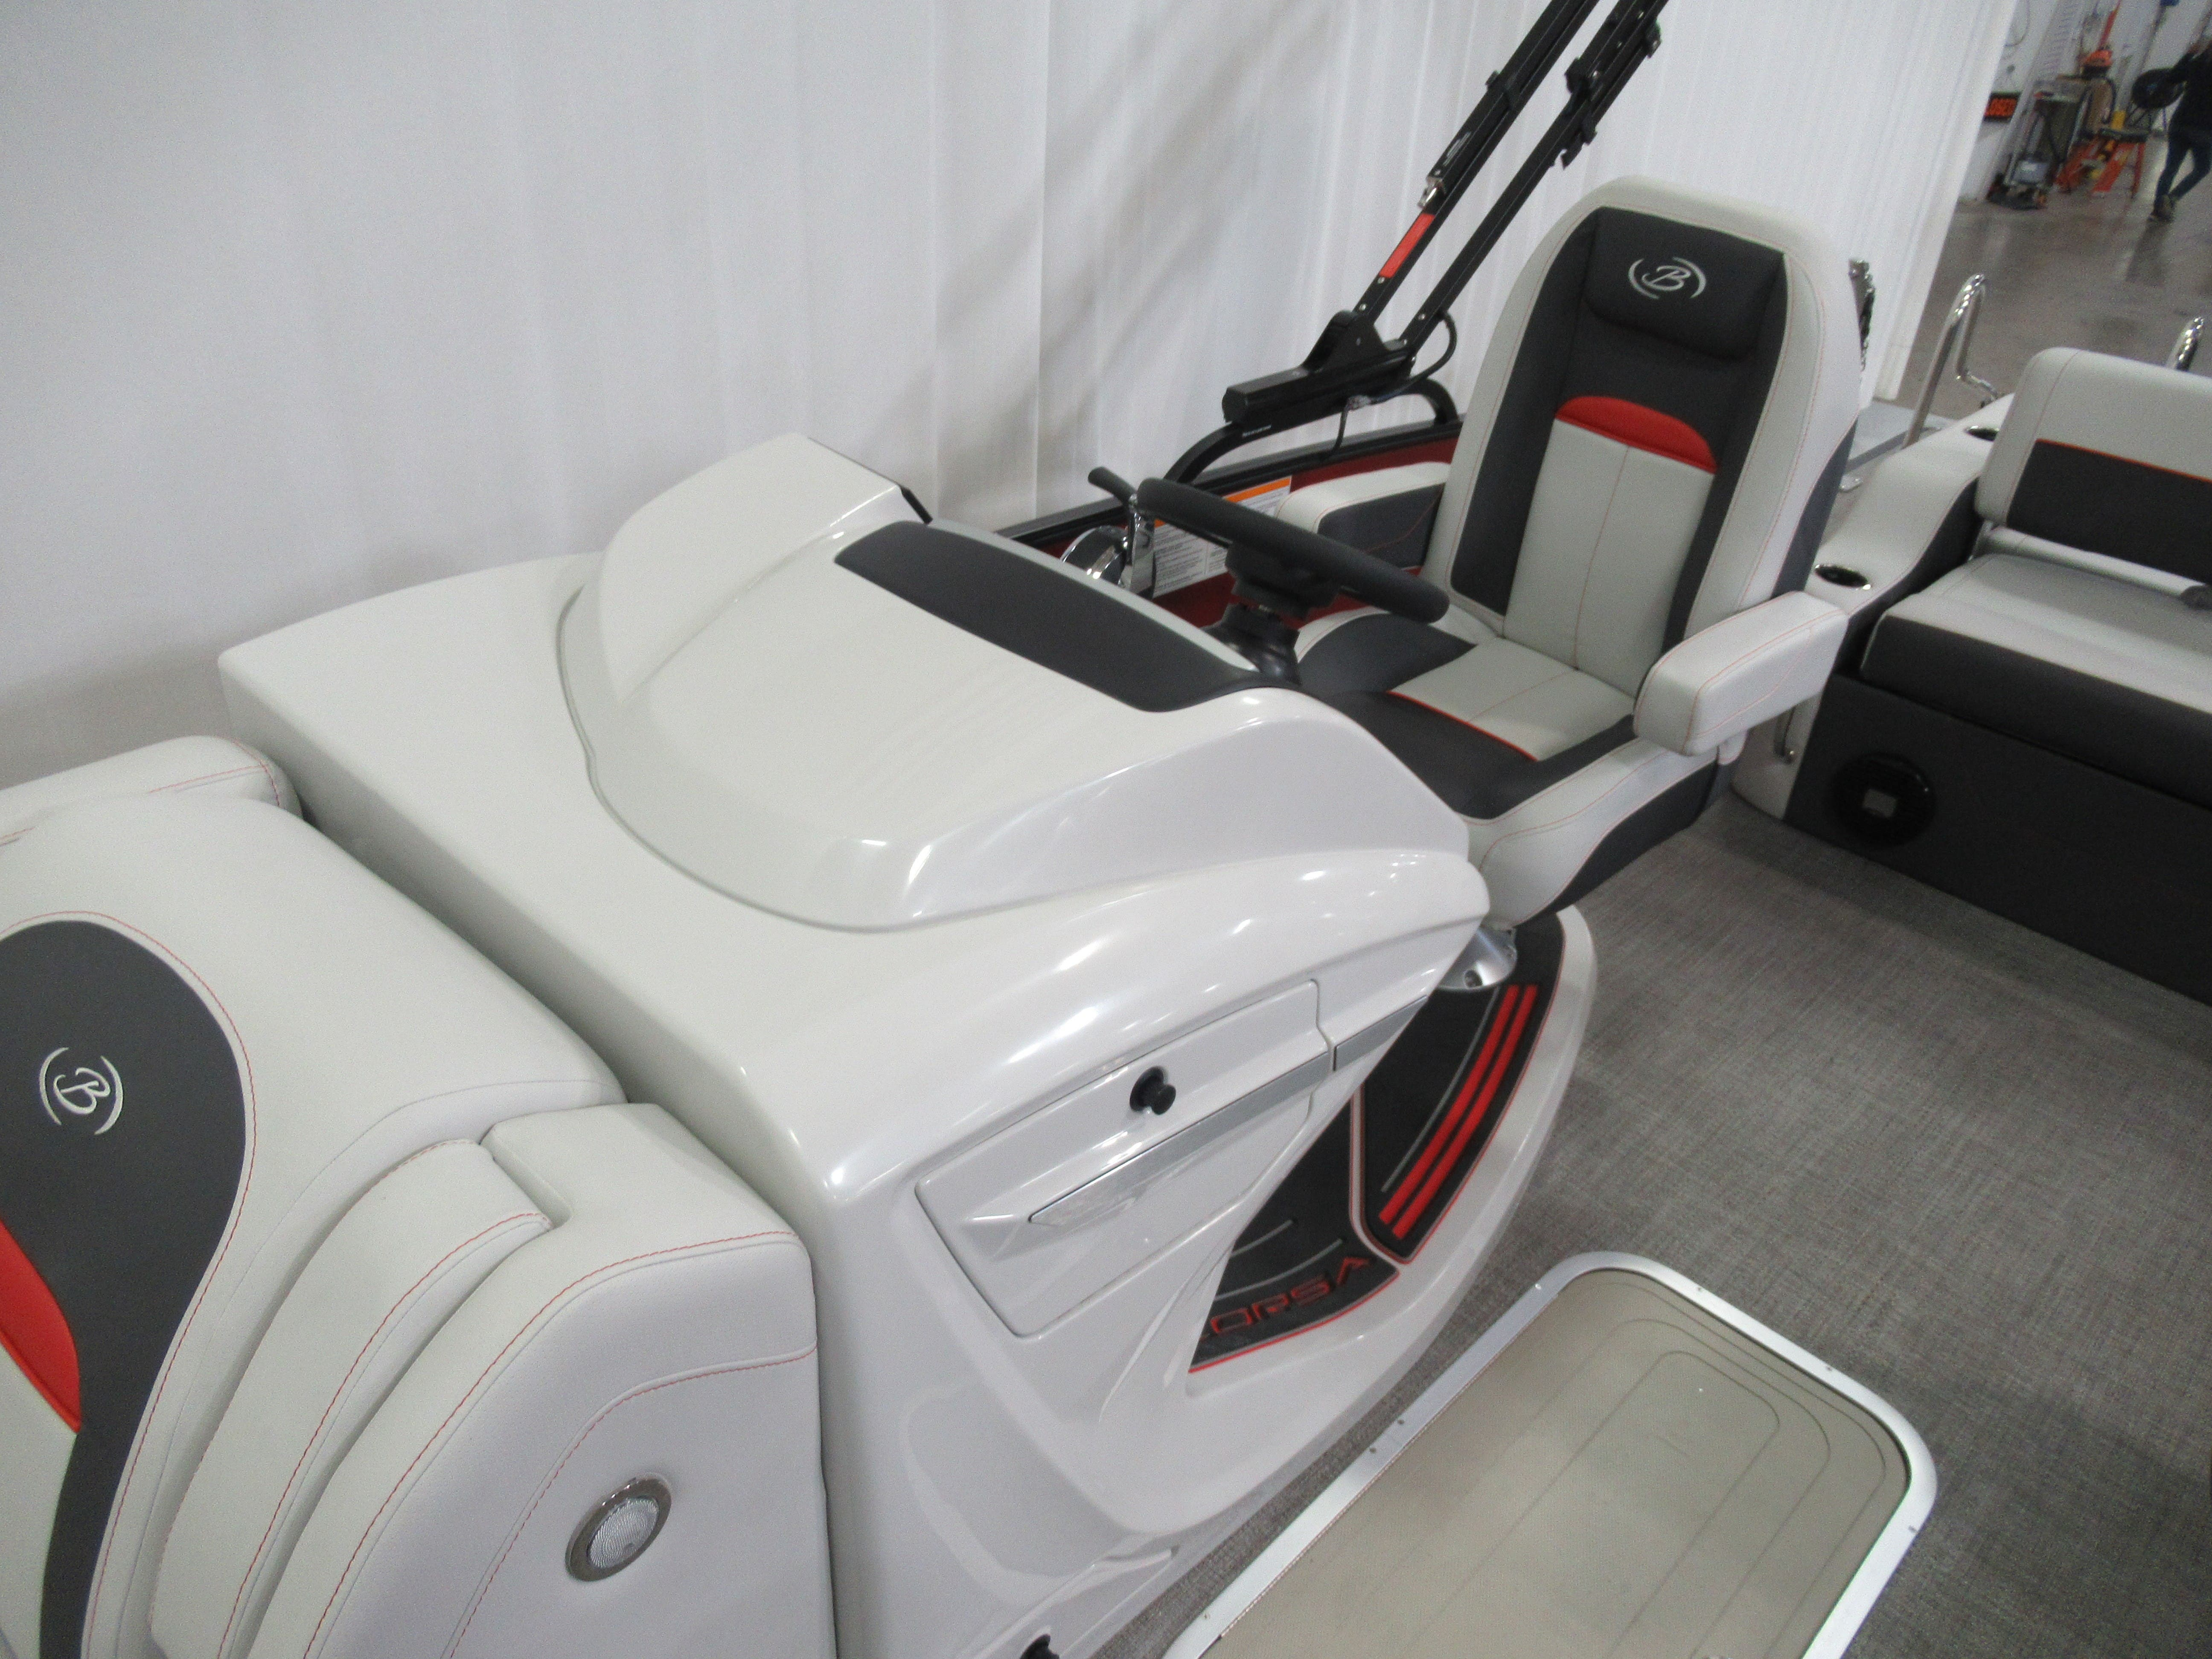 2021 Barletta boat for sale, model of the boat is CORSA 23UC & Image # 7 of 11